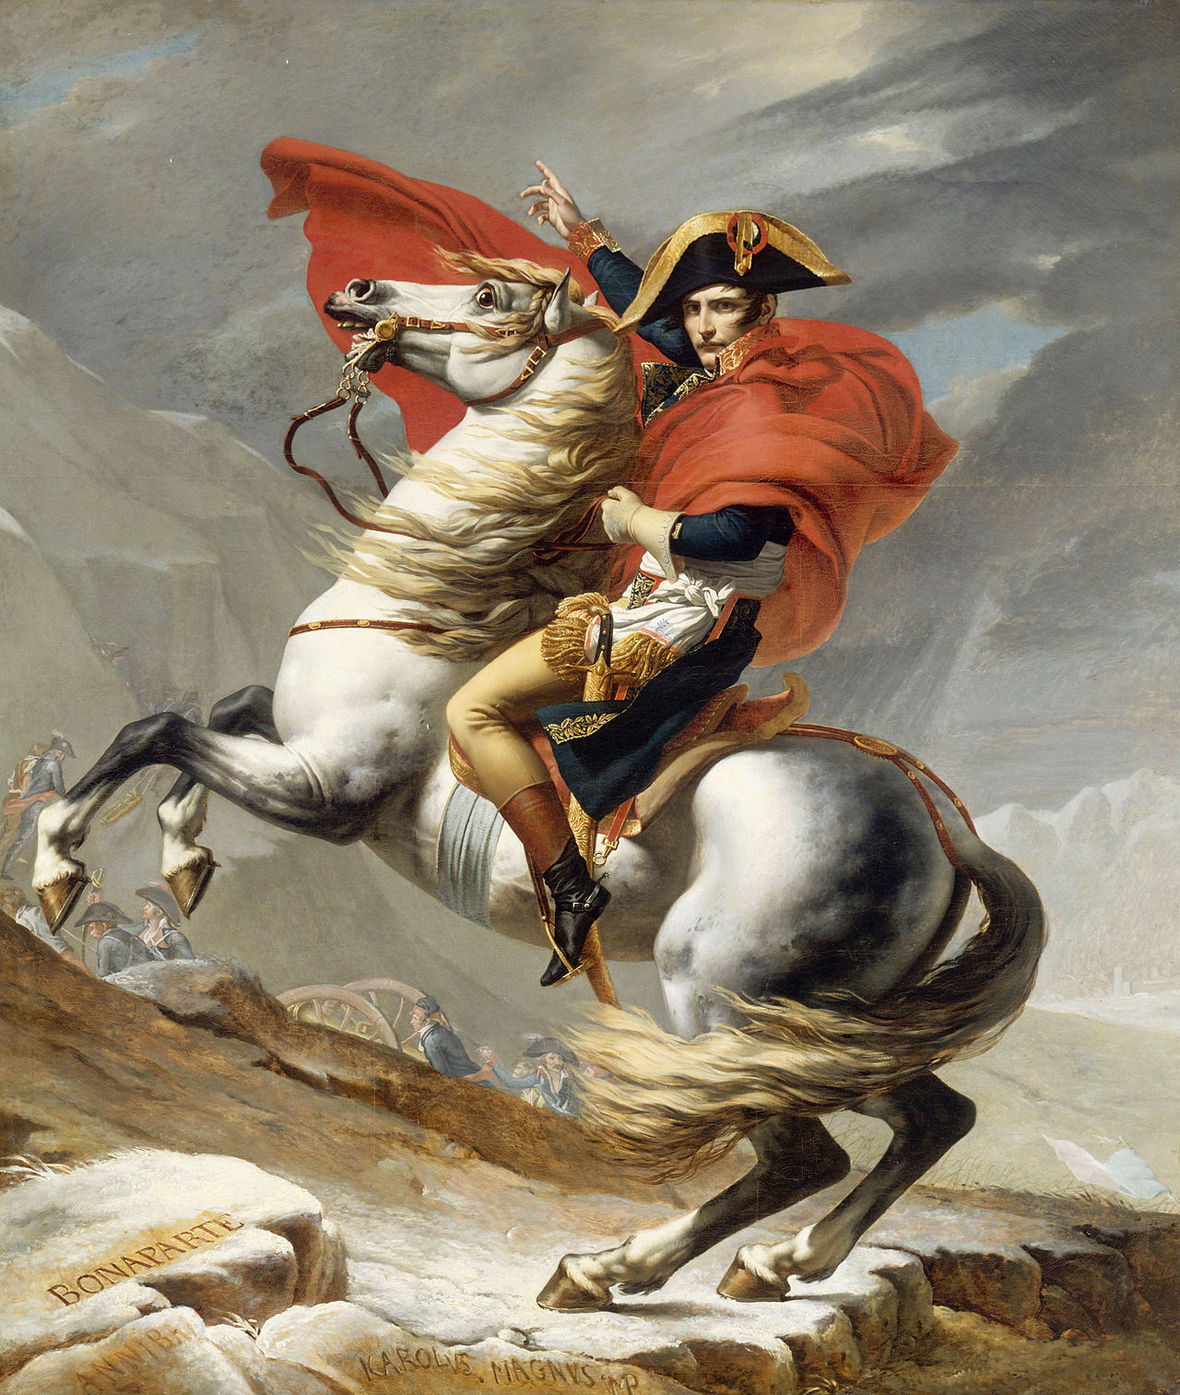 1280px-Jacques Louis David - Bonaparte franchissant le Grand Saint-Bernard  20 mai 1800 - Google Art Project